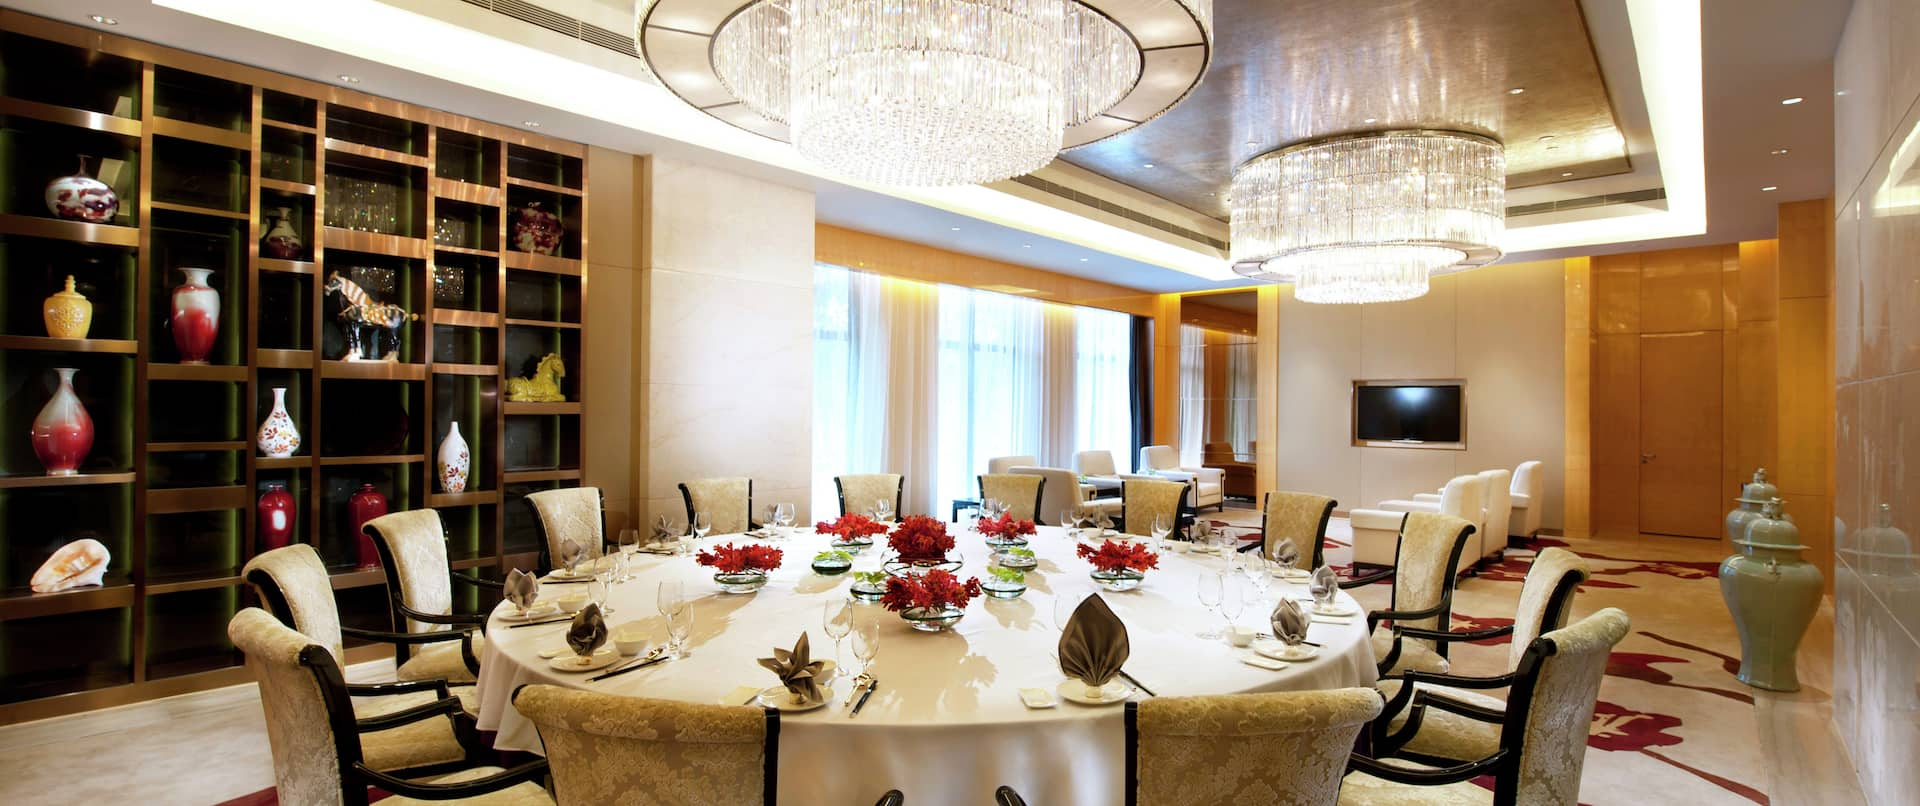 a private dining room with a round table